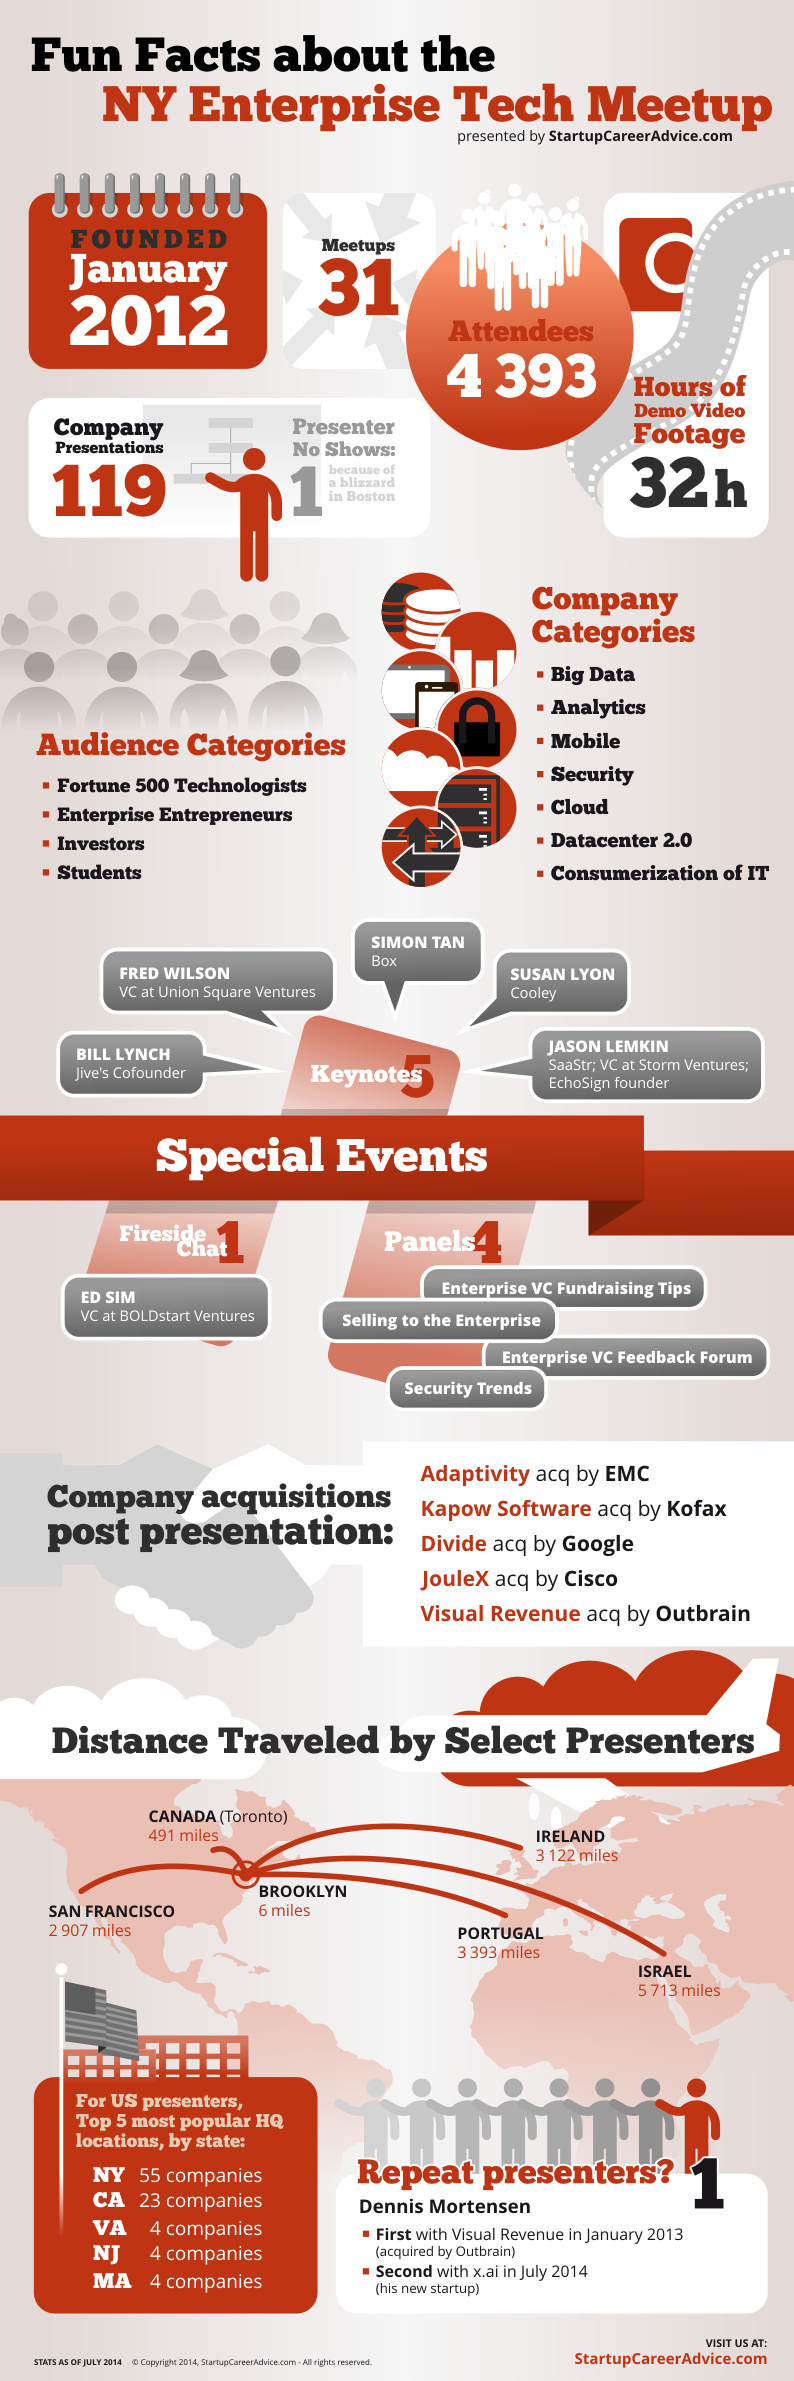 NYETM Infographic